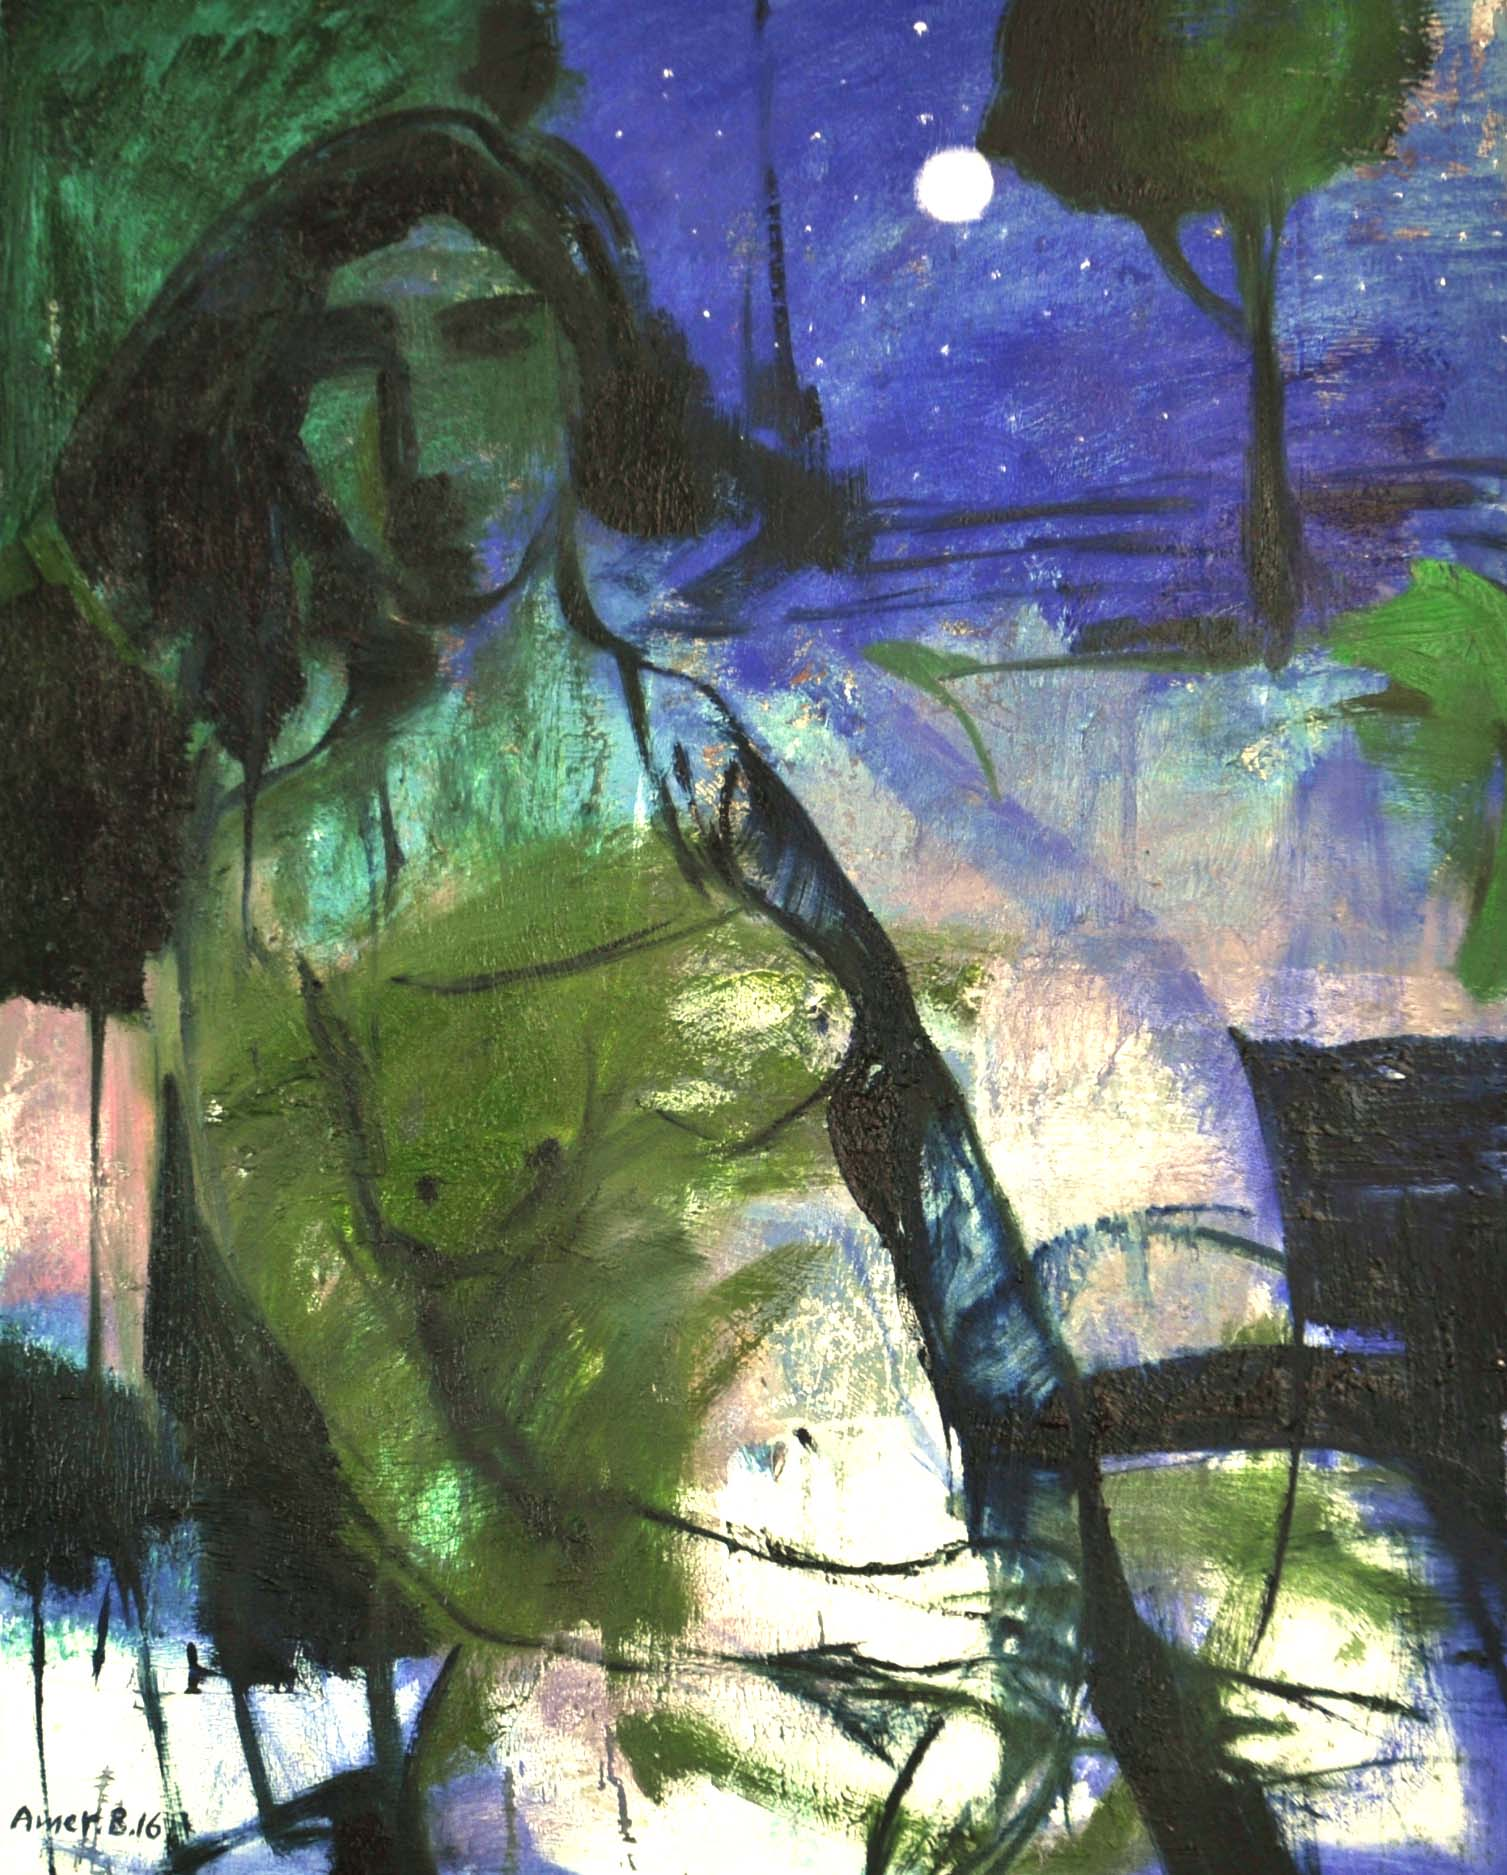 Moonlight - 65X81 cm - Oil on canvas - 201